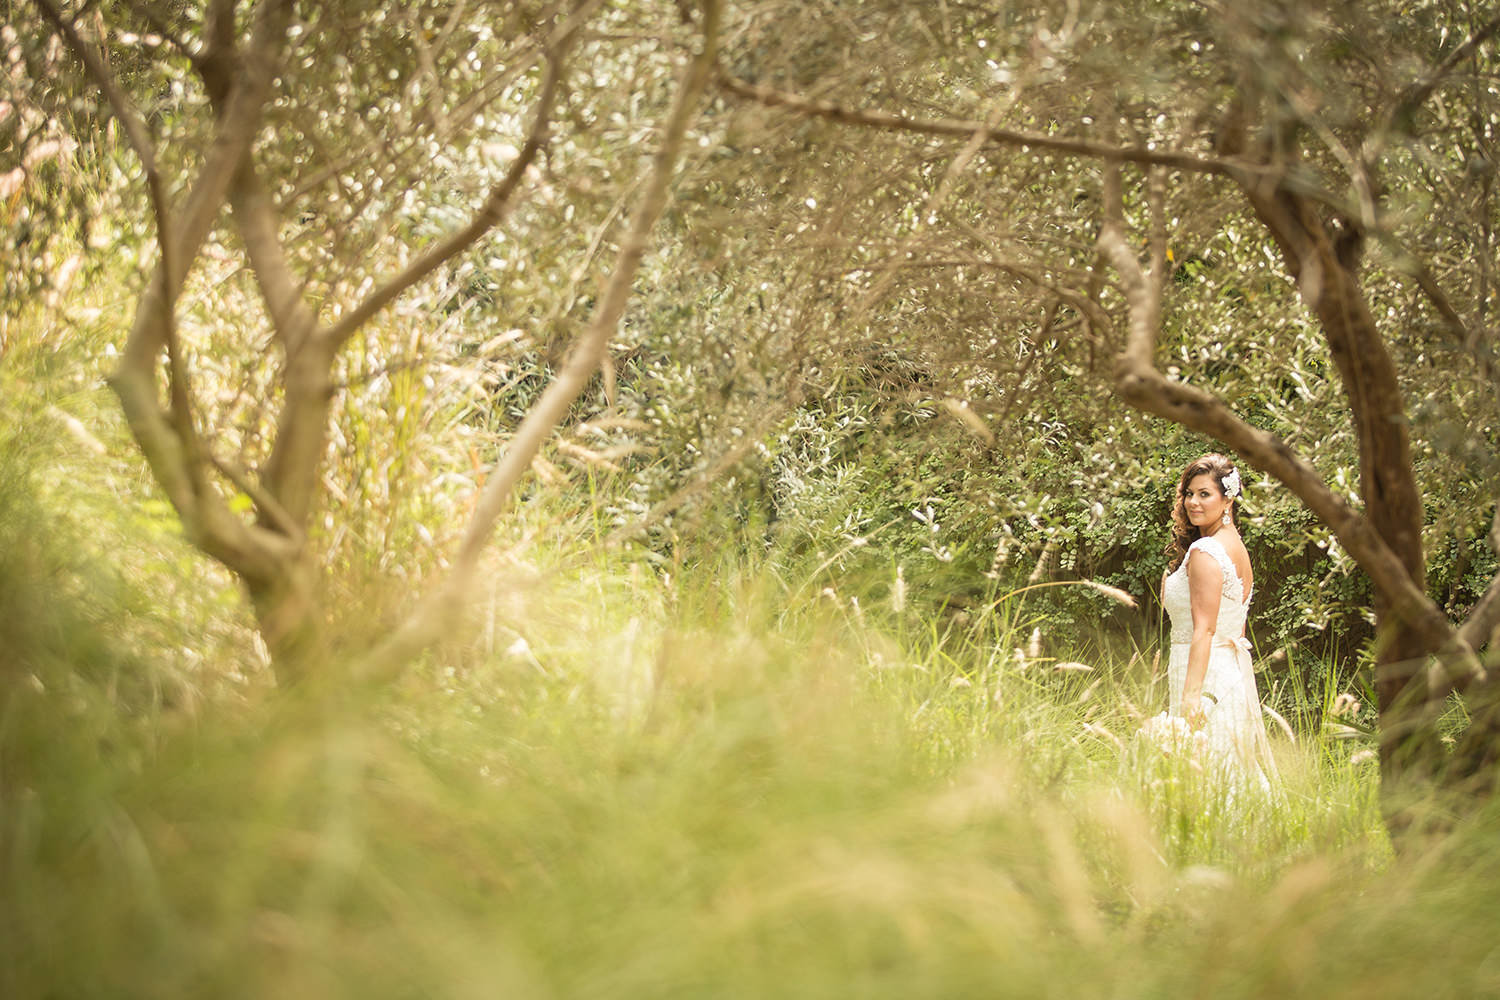 Rustic setting for a bridal portrait at Estancia La Jolla